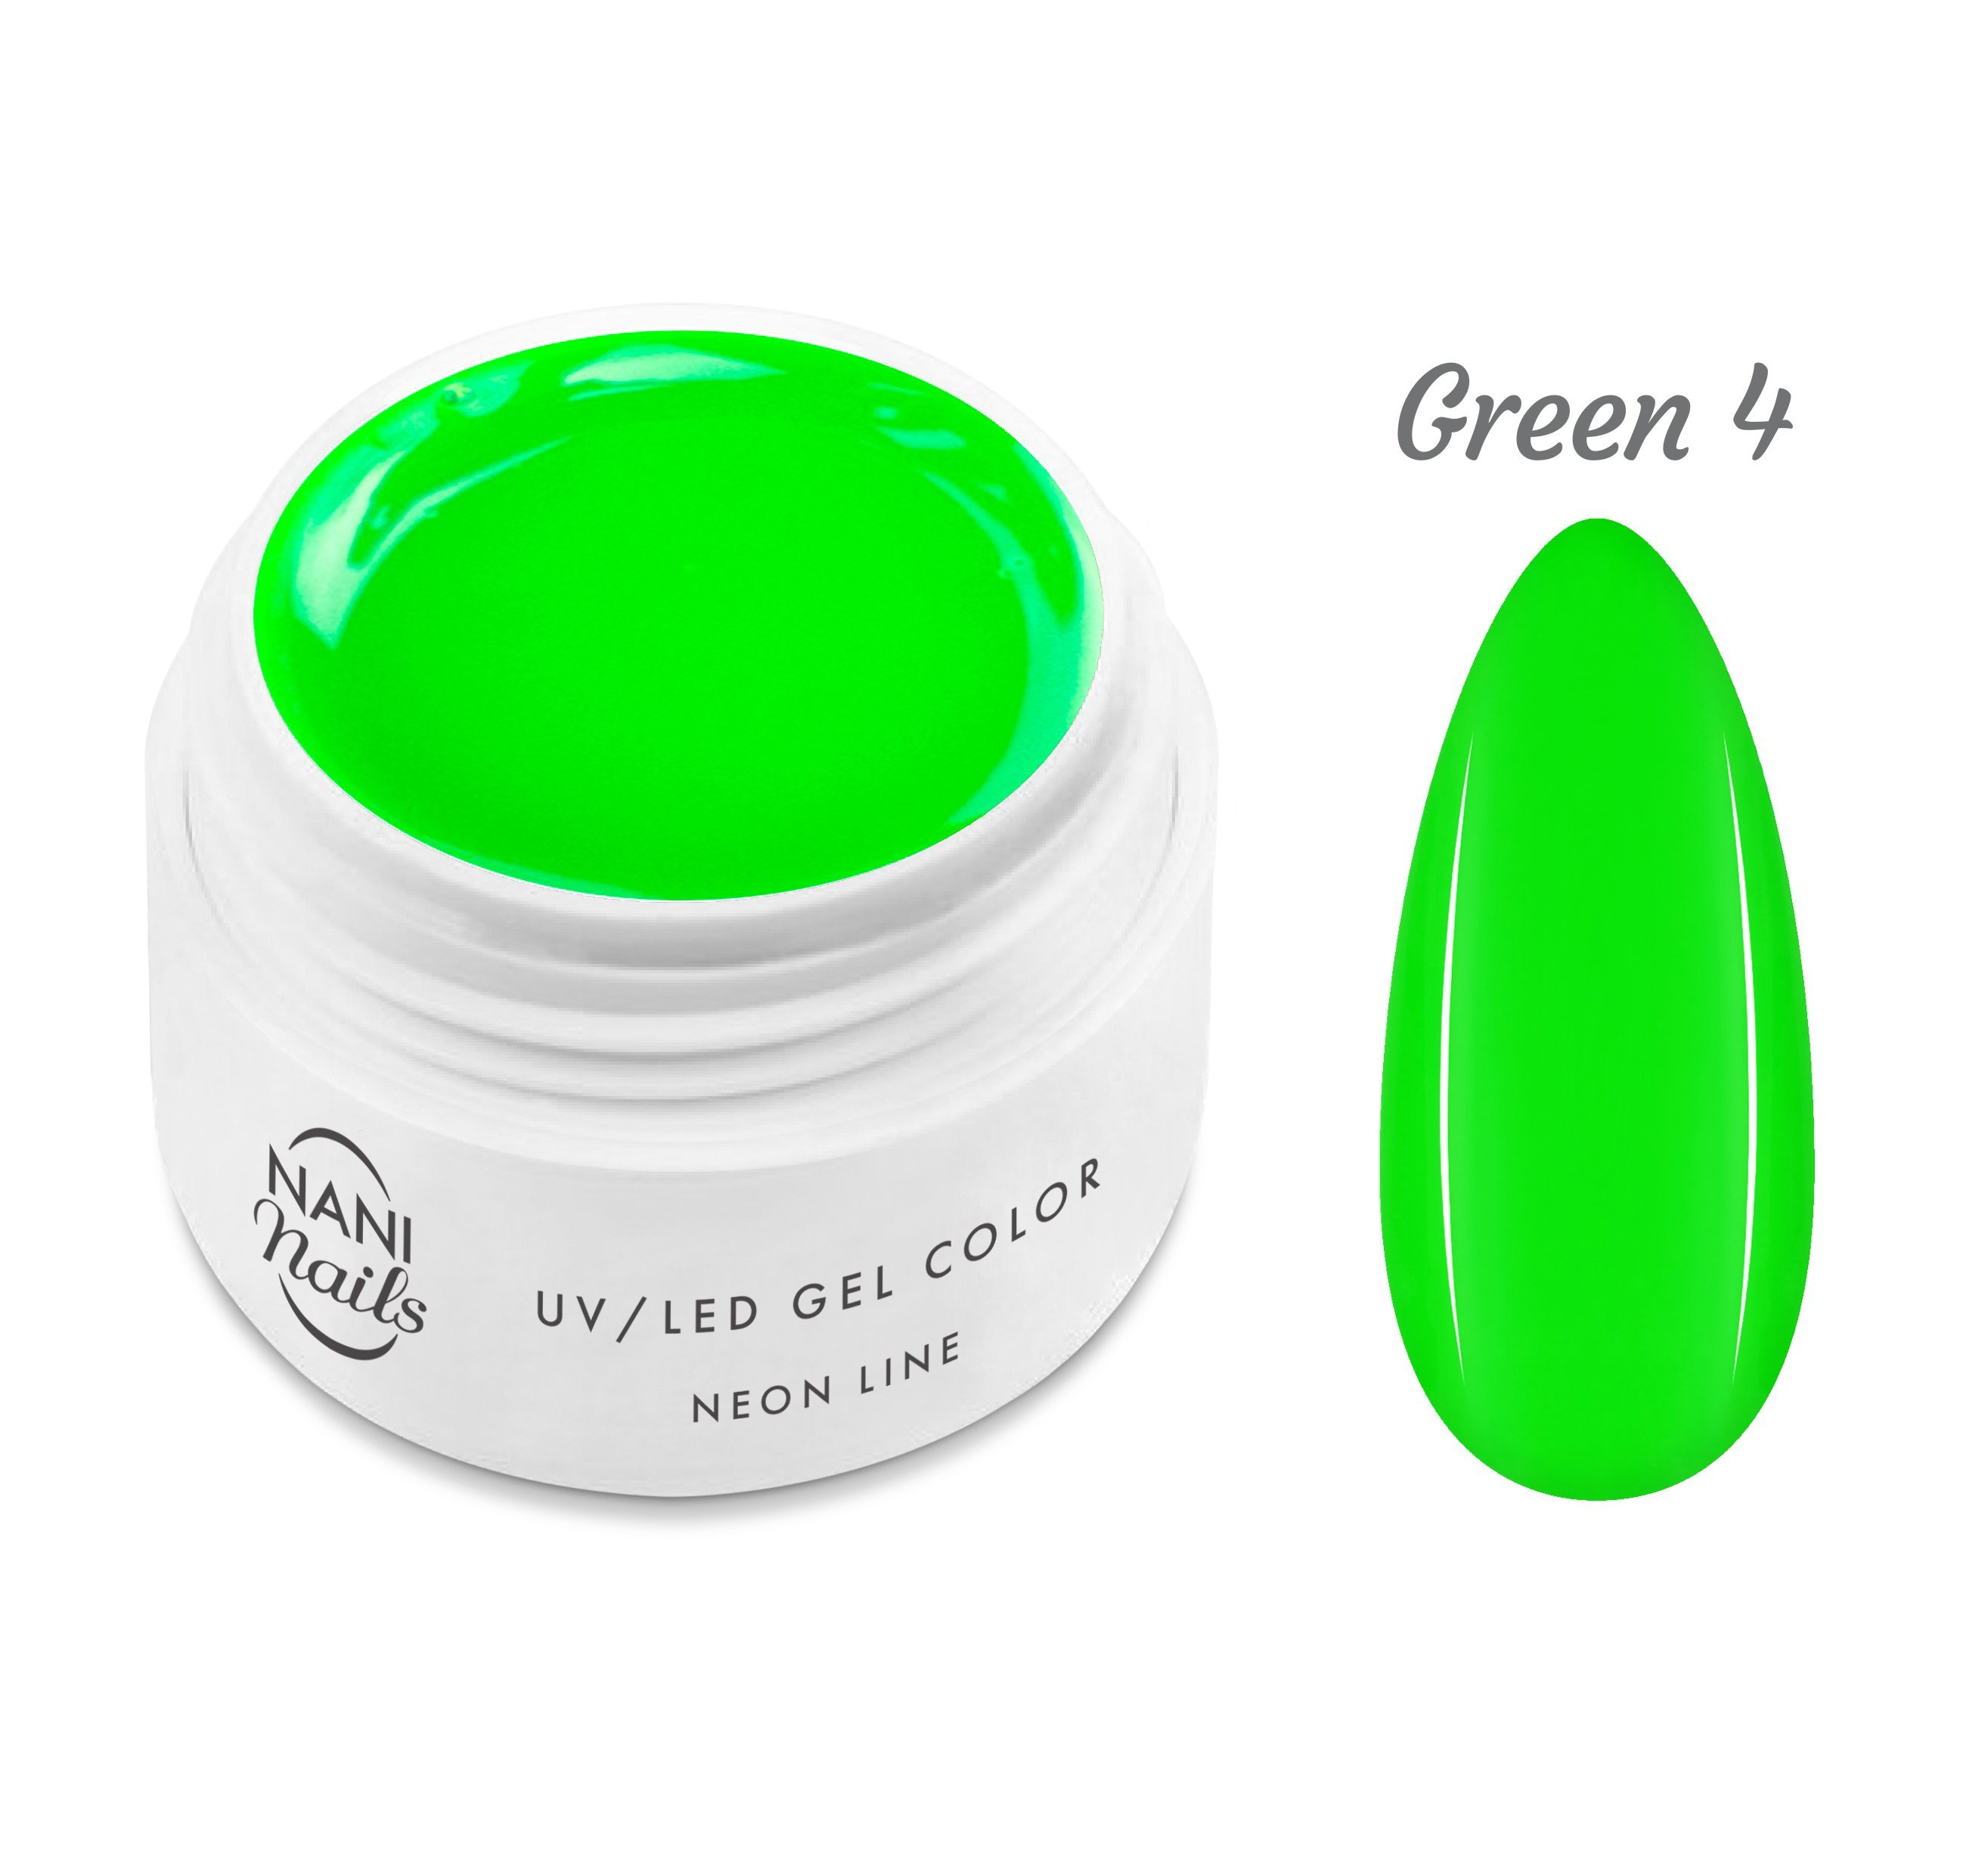 NANI UV gél Neon Line 5 ml - Green